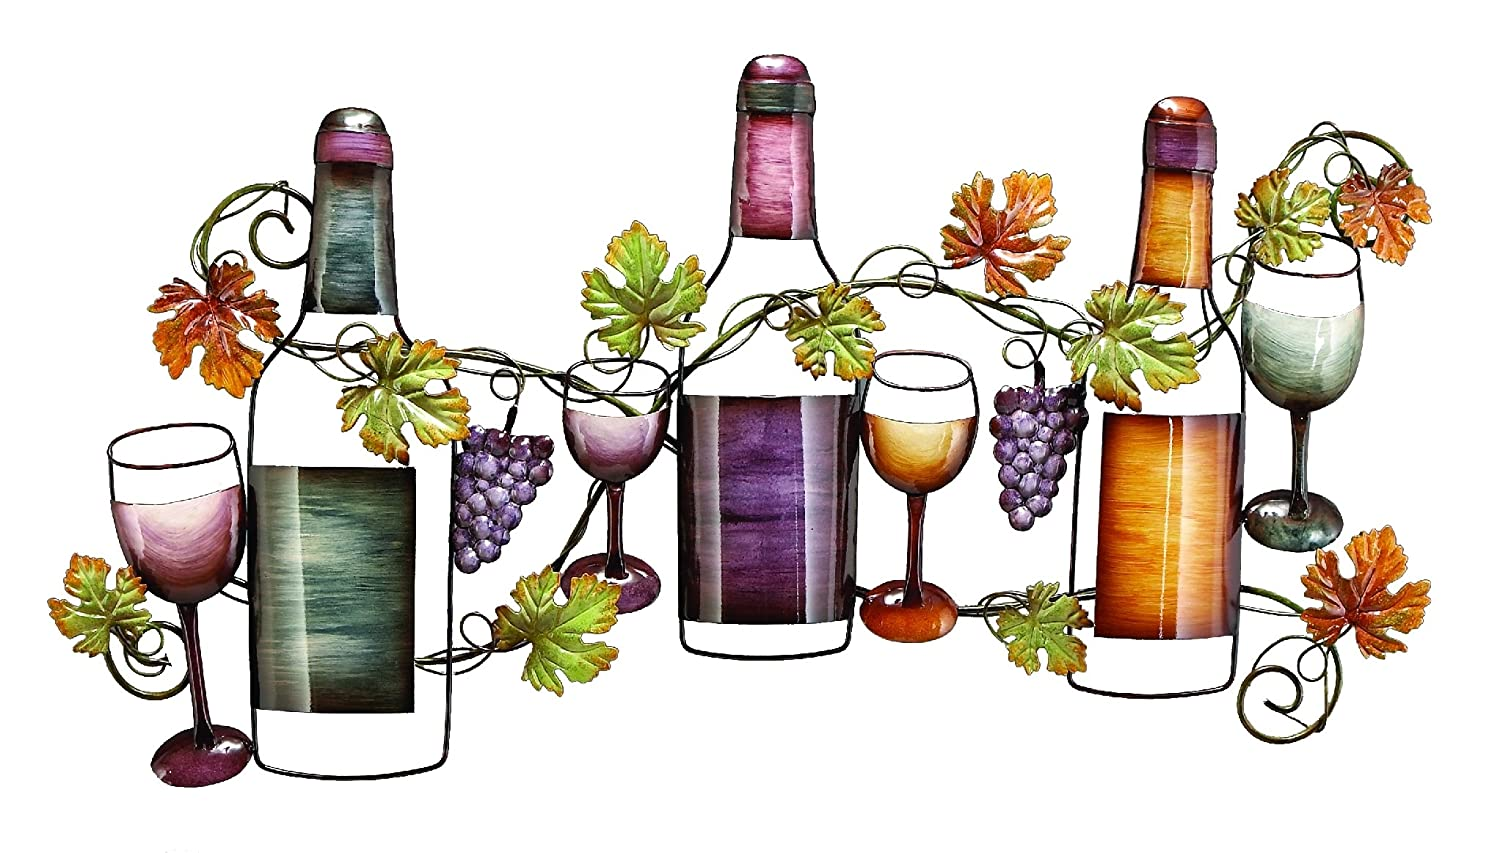 Wine Bottles Wall Metal Art: Beautiful To Present